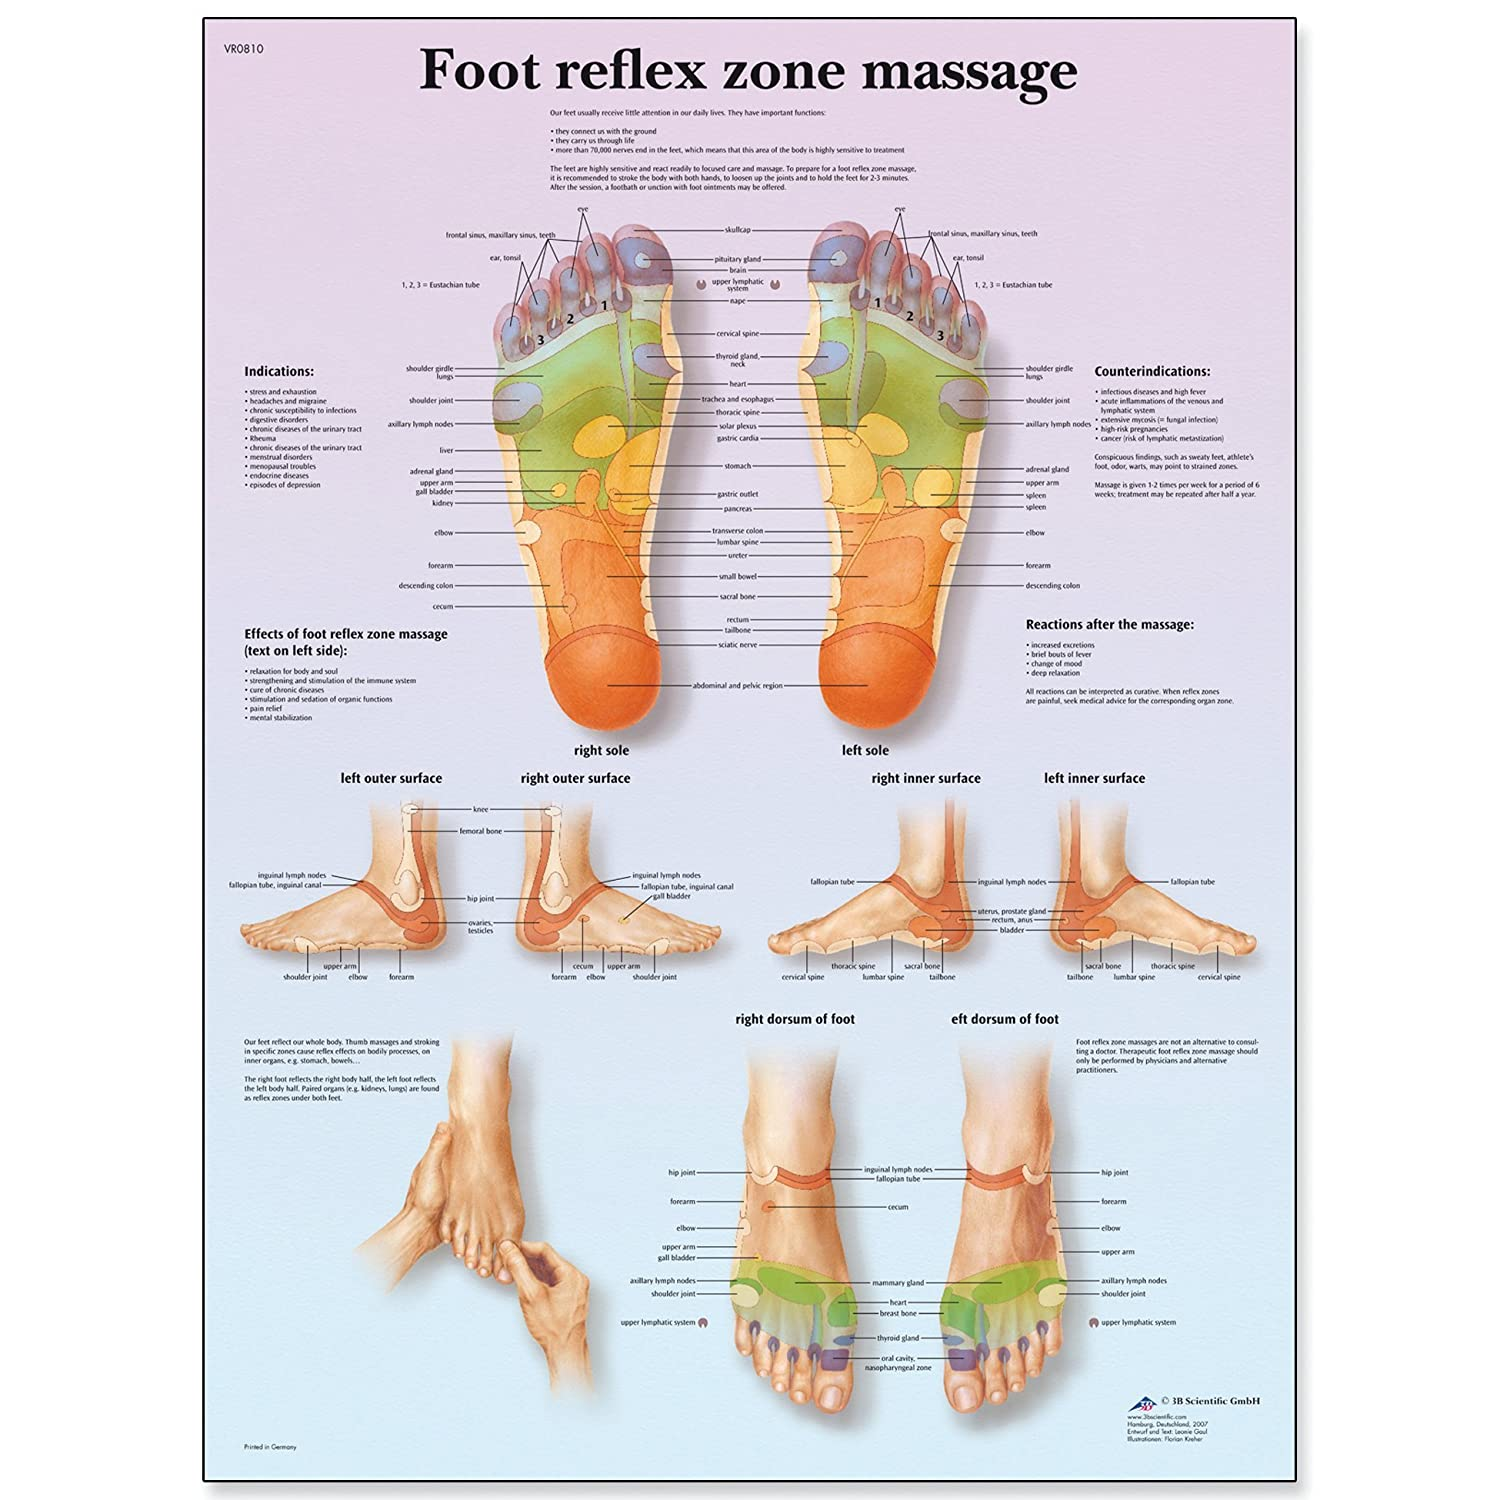 3B Scientific VR1810L Glossy UV Resistant Laminated Paper Foot Reflex Zone Massage Anatomical Chart, Poster Size 20-Inch Widthx26-Inch Height